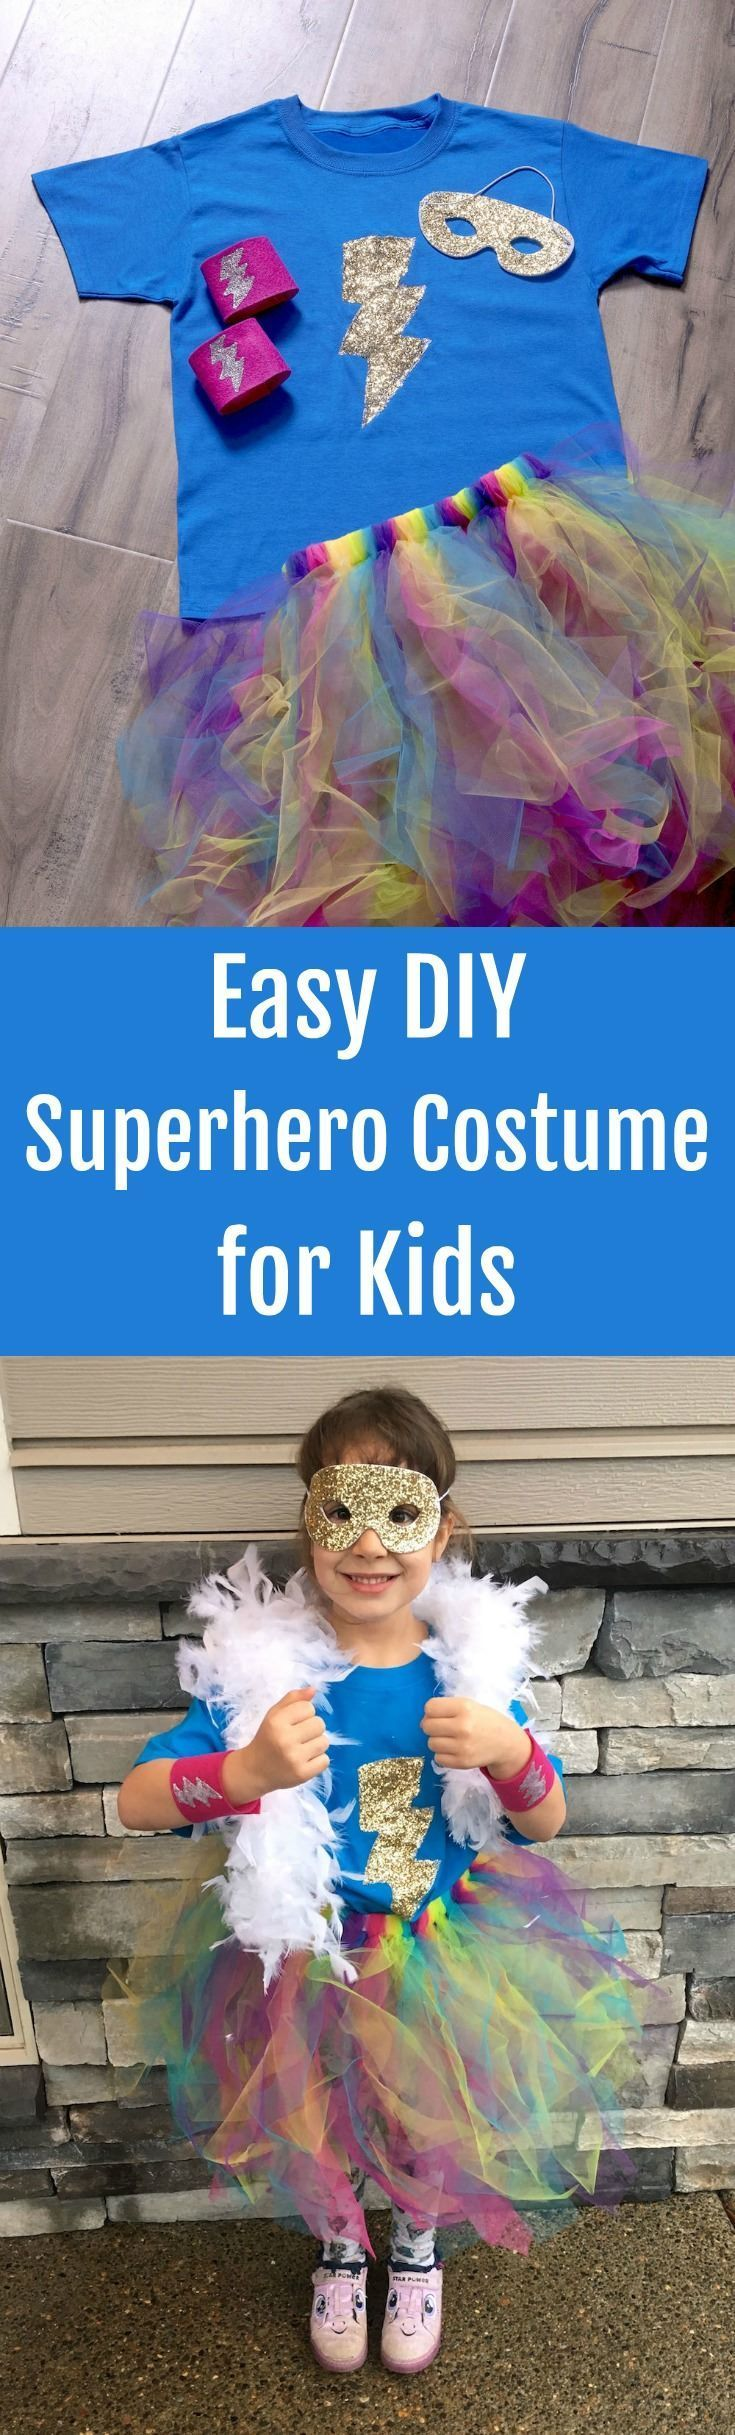 Learn to make a DIY superhero costume for kids - the easy way! This costume is budget friendly and simple for anyone to do. Great for Halloween or Superhero Week at school! Fun for girls, for women, for teens! via @modpodgerocks #ad